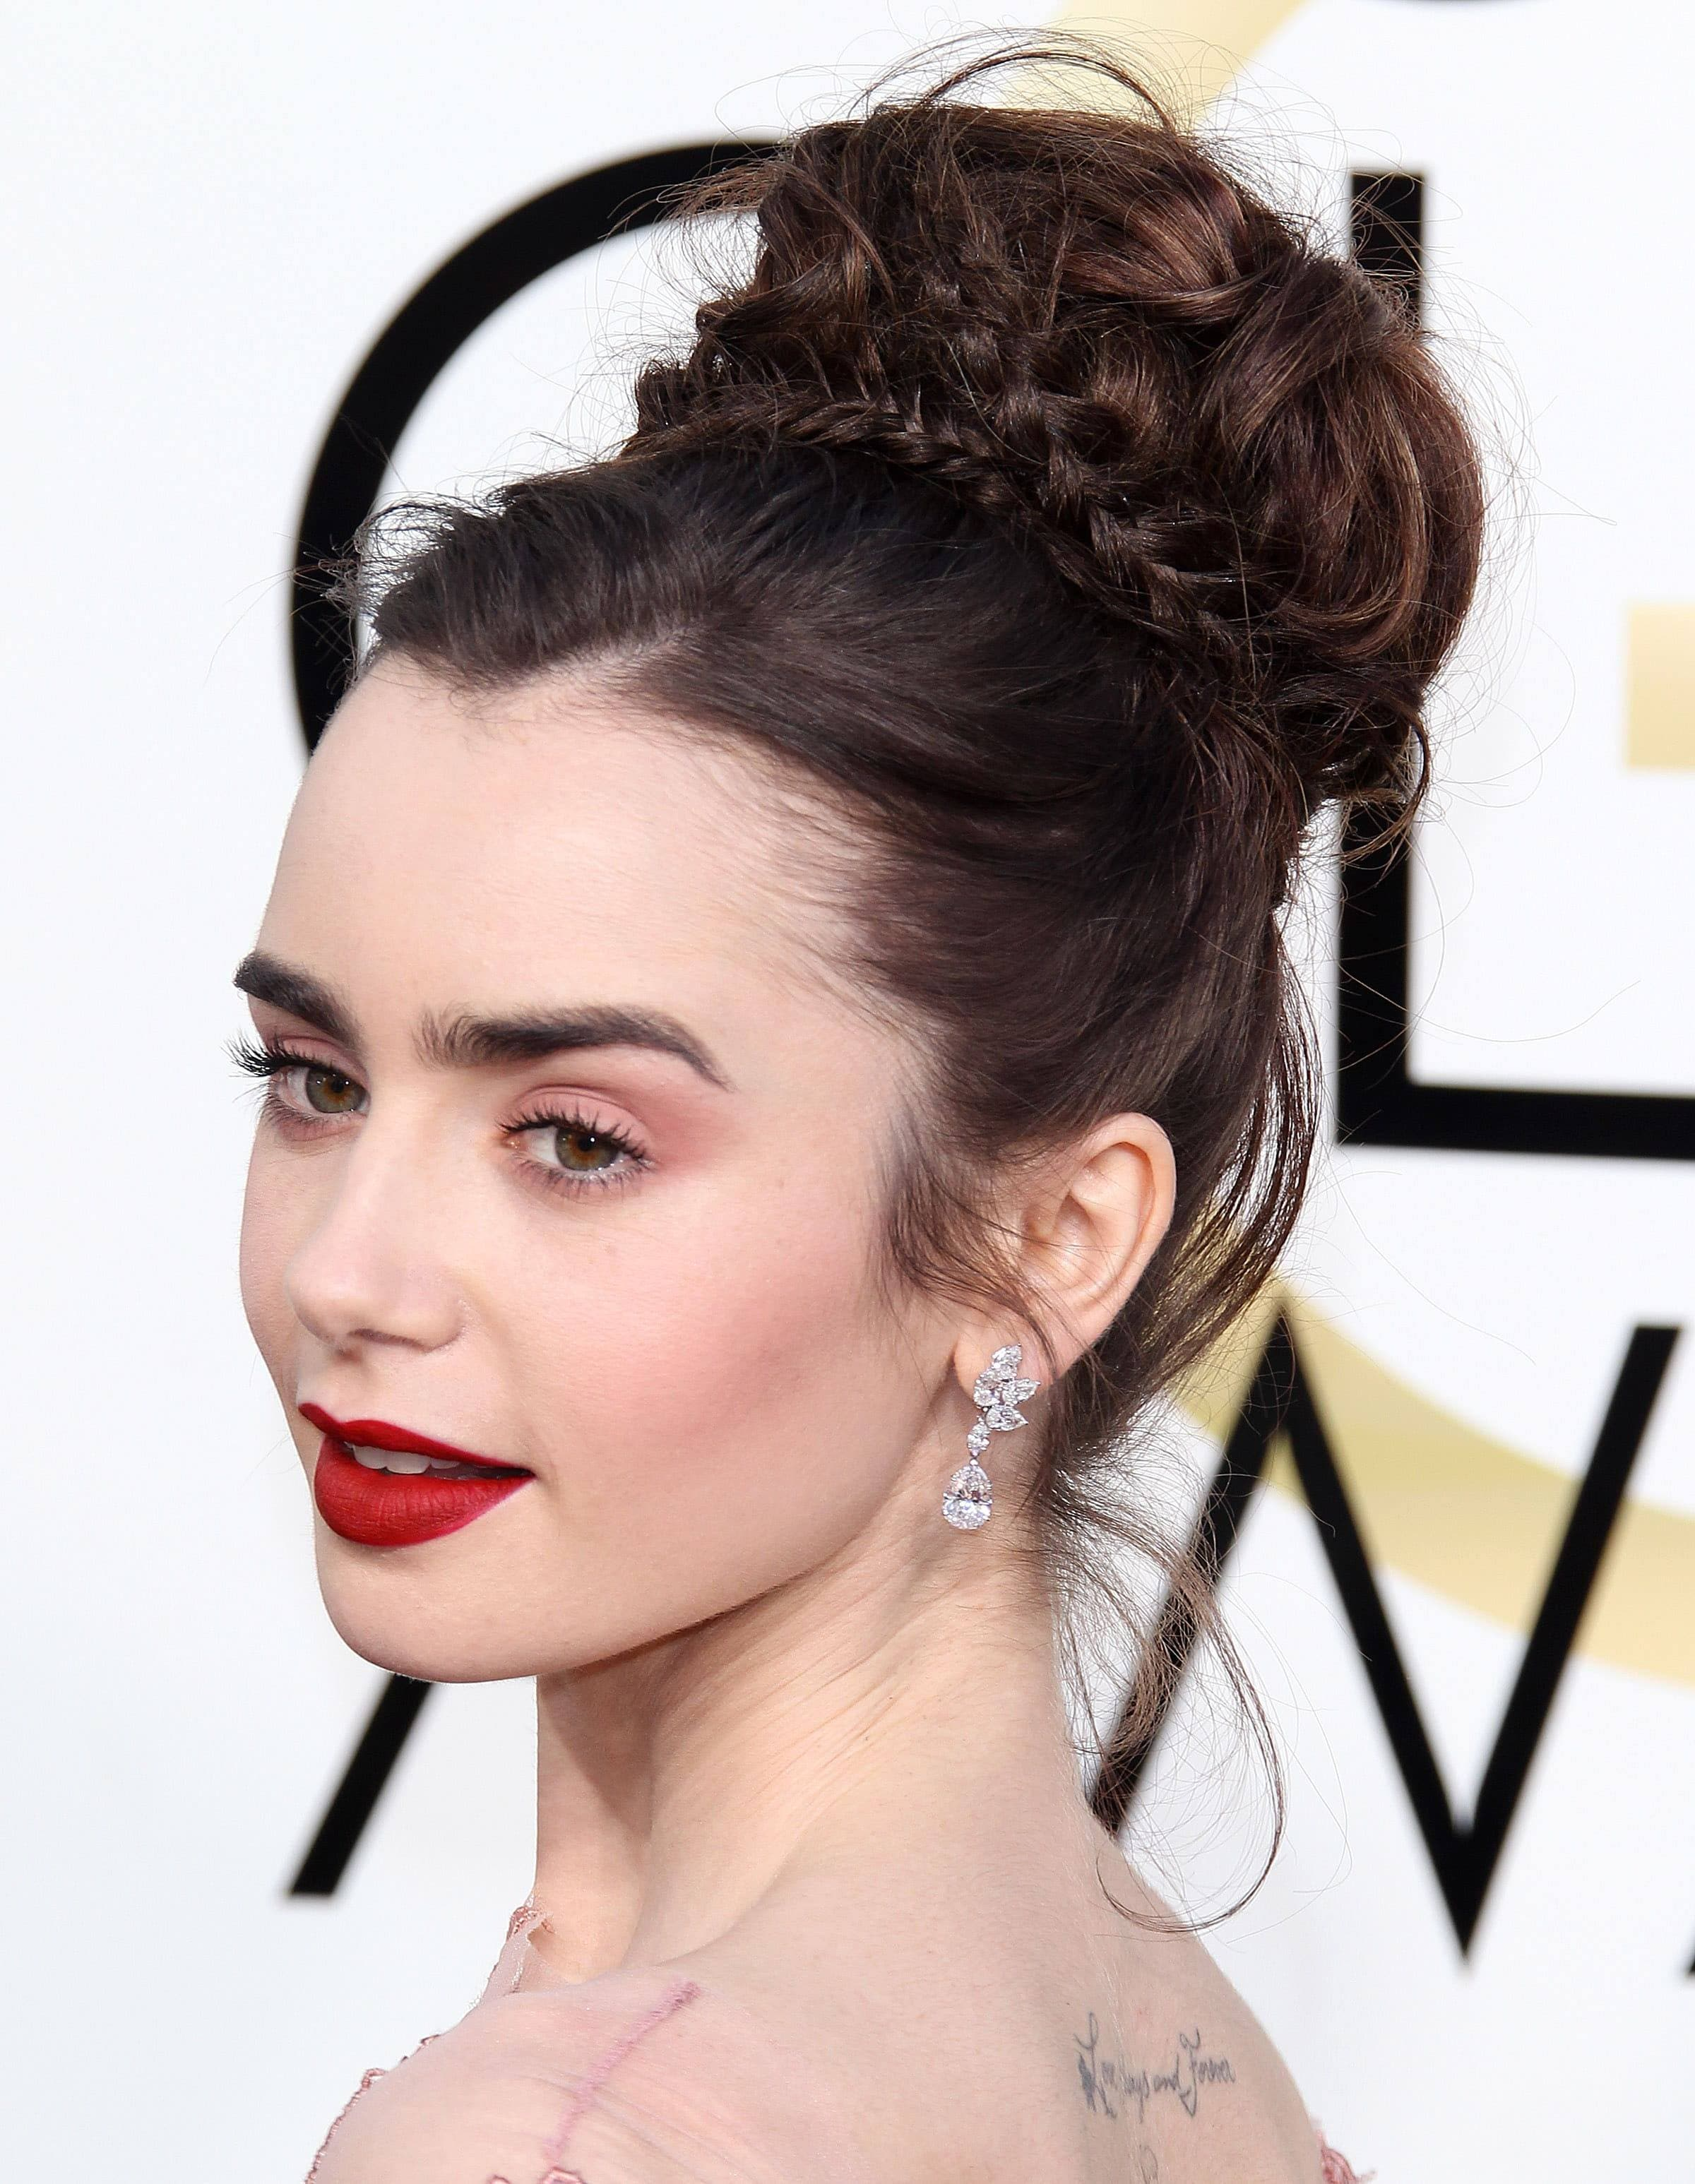 Golden Globes 2017: Lily Collins. Credit: Rex by Shutterstock